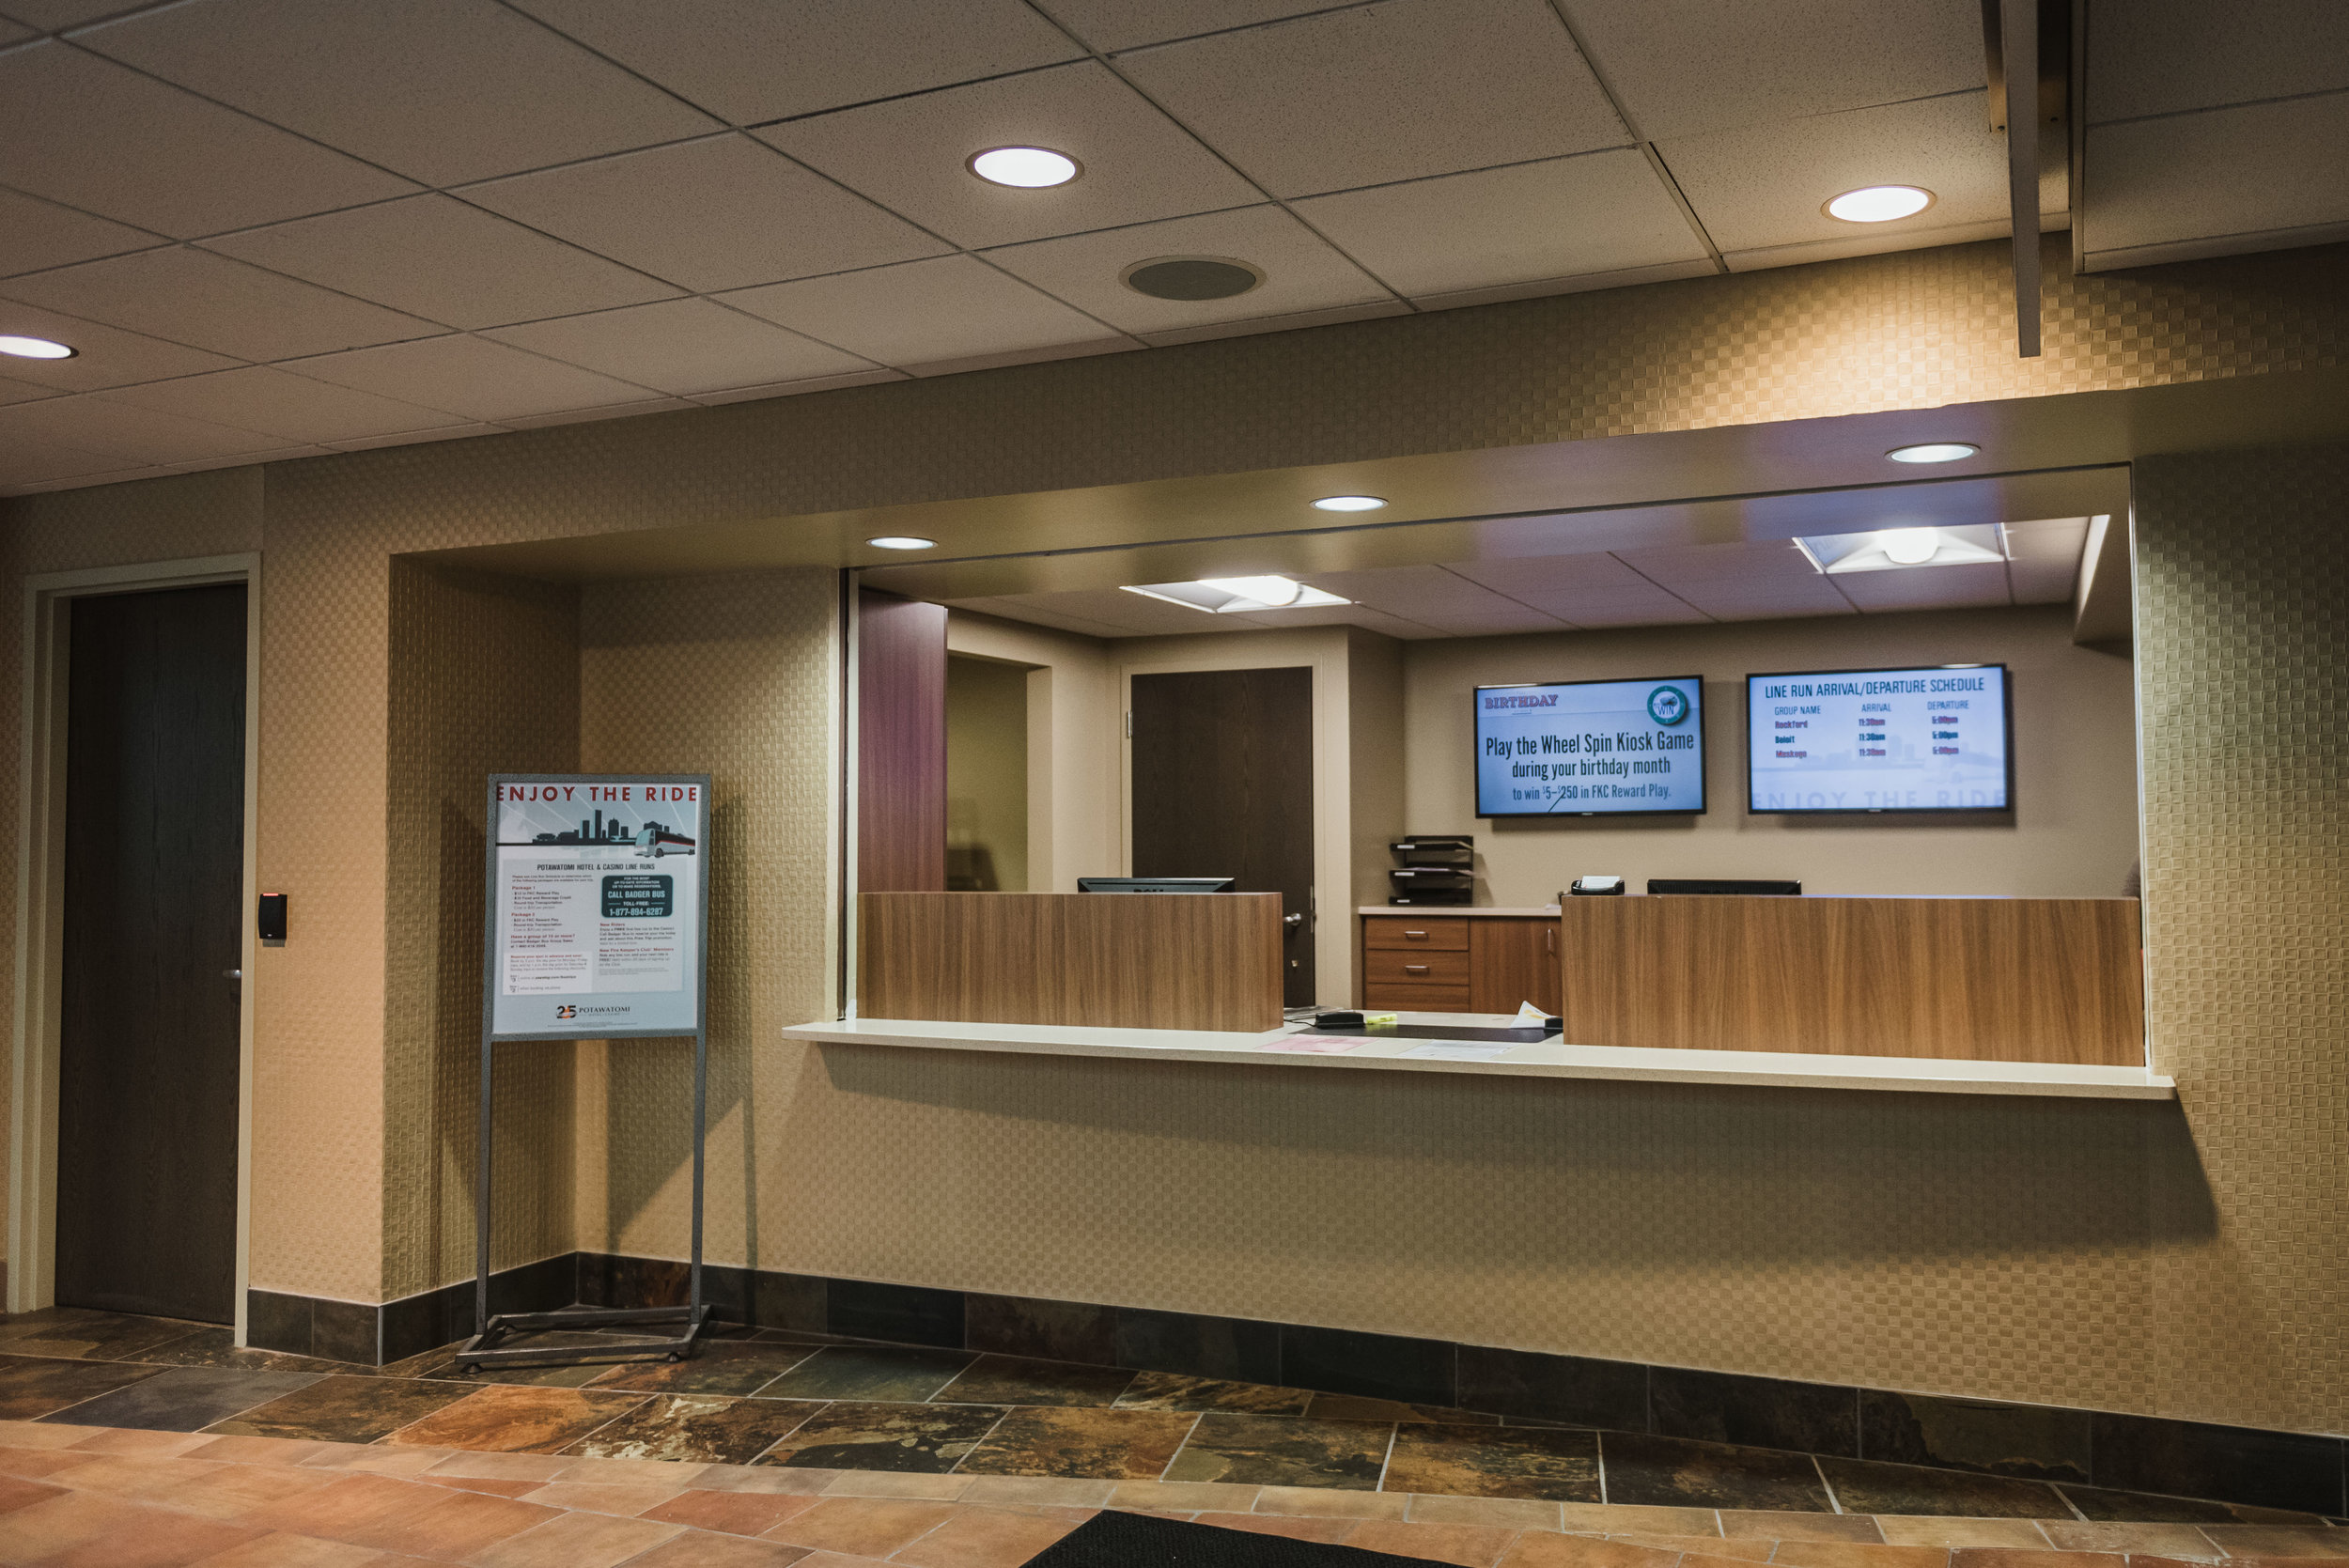 POTAWATOMI HOTEL & CASINO ADMINISTRATIVE OFFICE RENOVATION